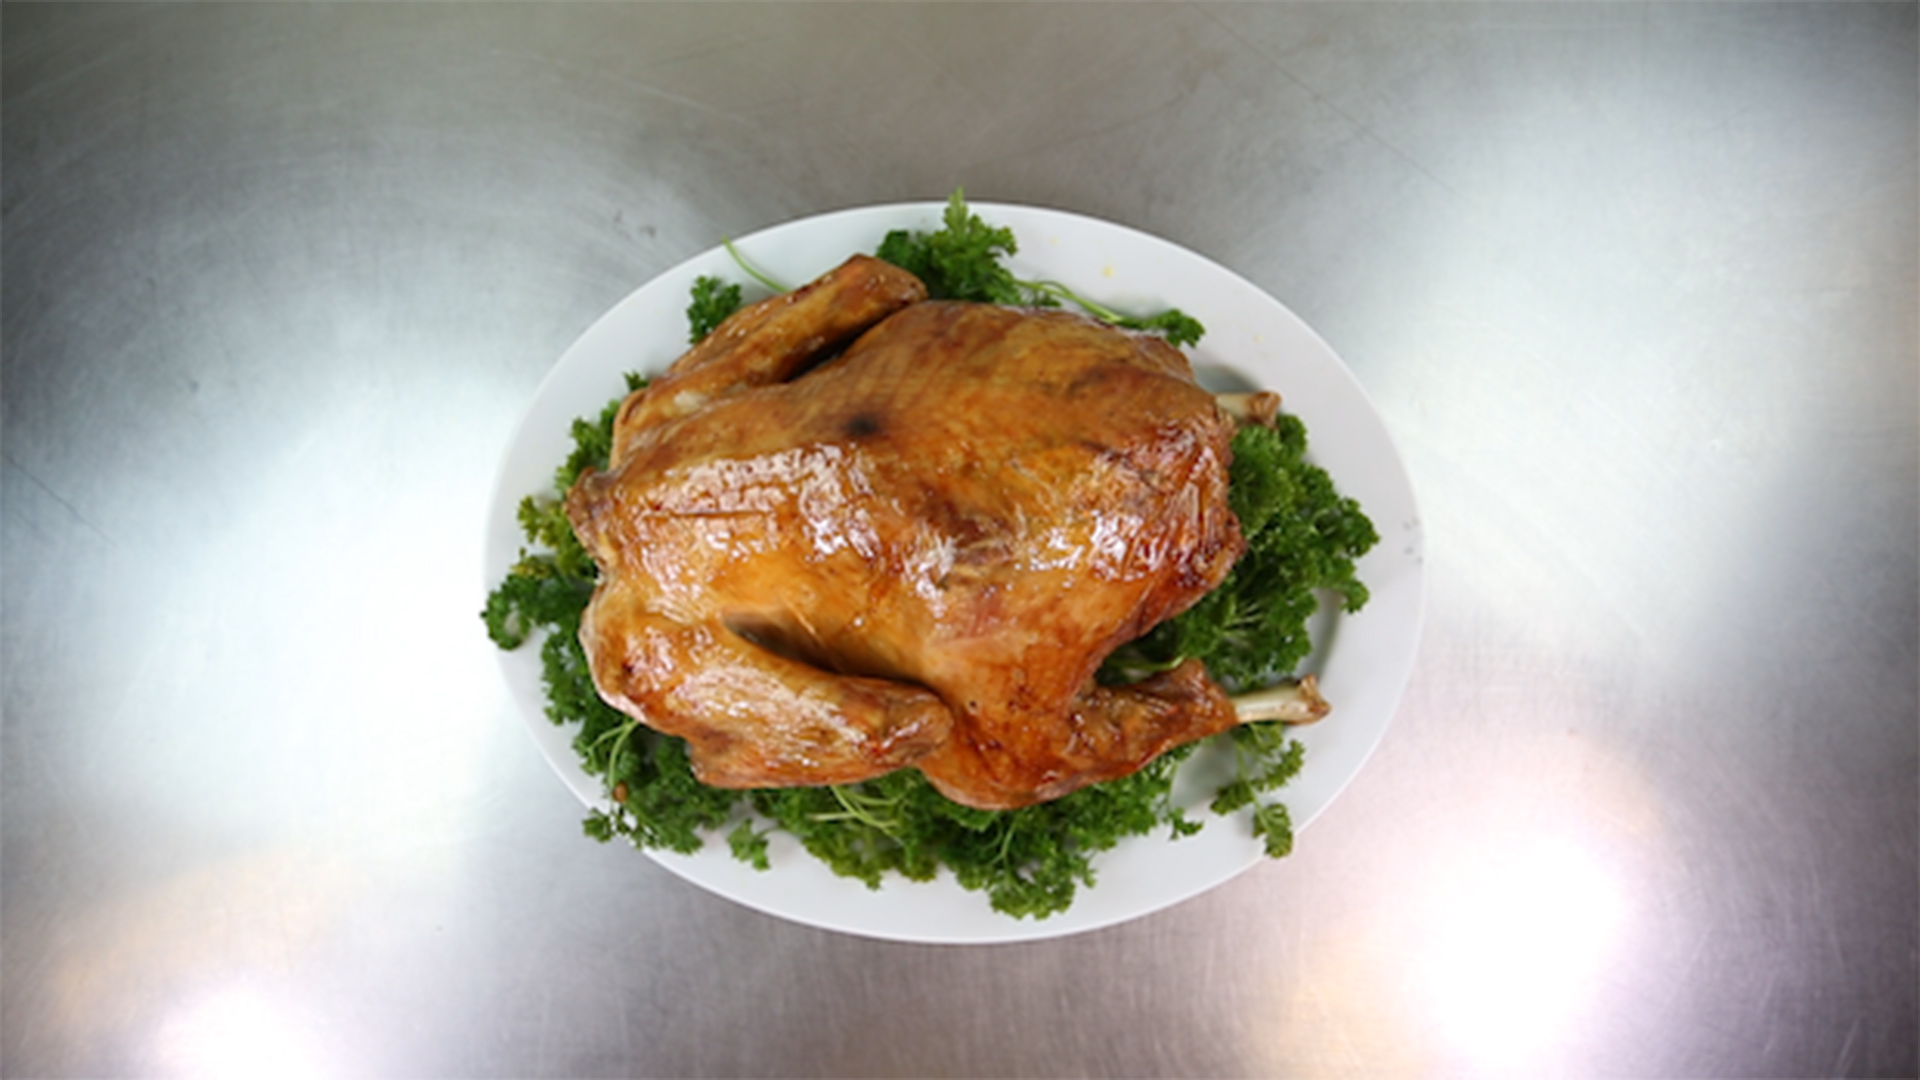 The River Recipe: Roasted Turkey